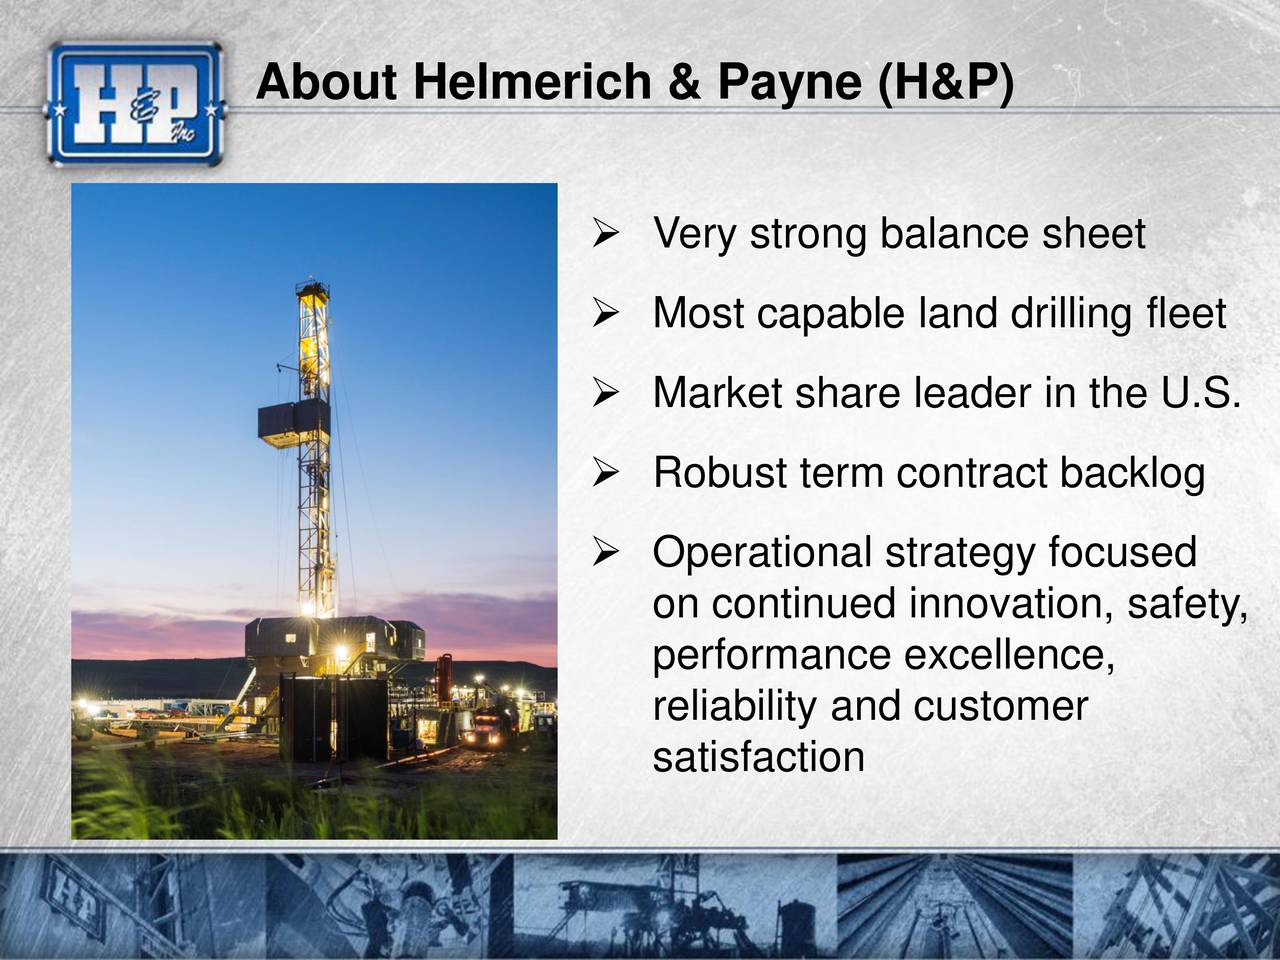 Very strong balance sheet Most capable land drilling fleet Market share leader in the U.S. Robust term contract backlog Operational strategy focused on continued innovation, safety, performance excellence, reliability and customer satisfaction